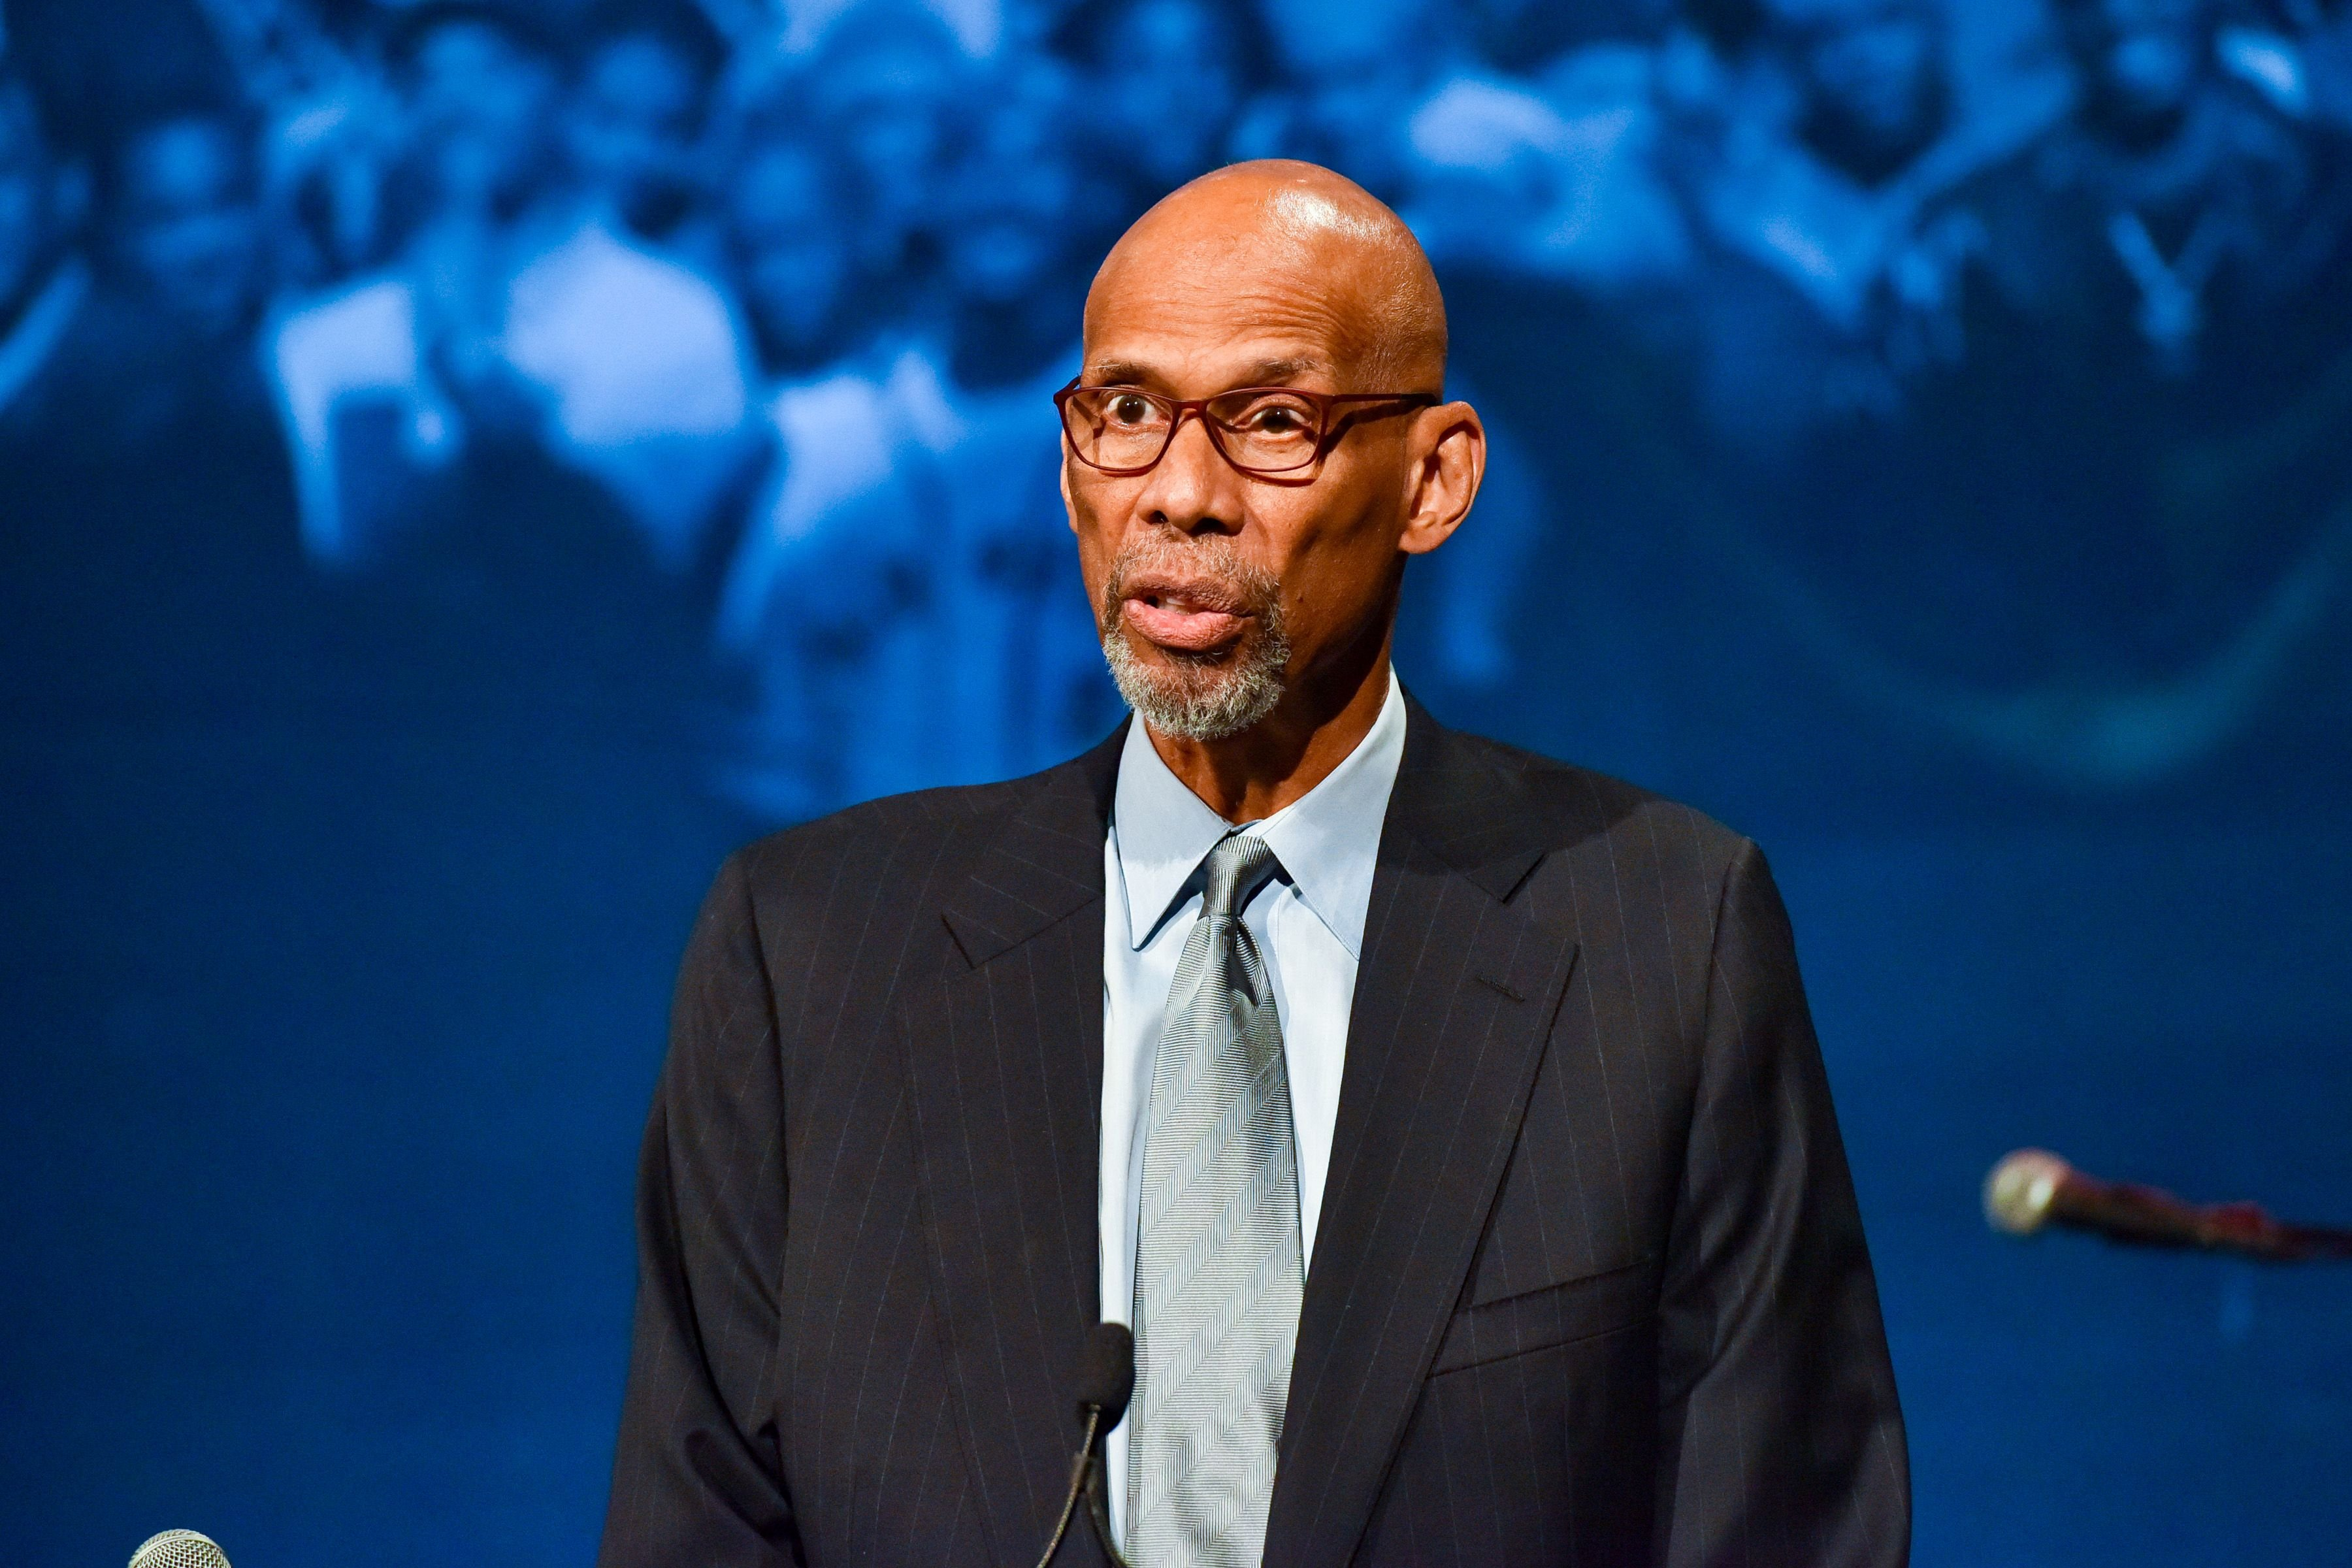 Kareem Abdul-Jabbar at The Gordon Parks Foundation 2019 Annual Awards Dinner And Auction on June 04, 2019 | Photo: Getty Images